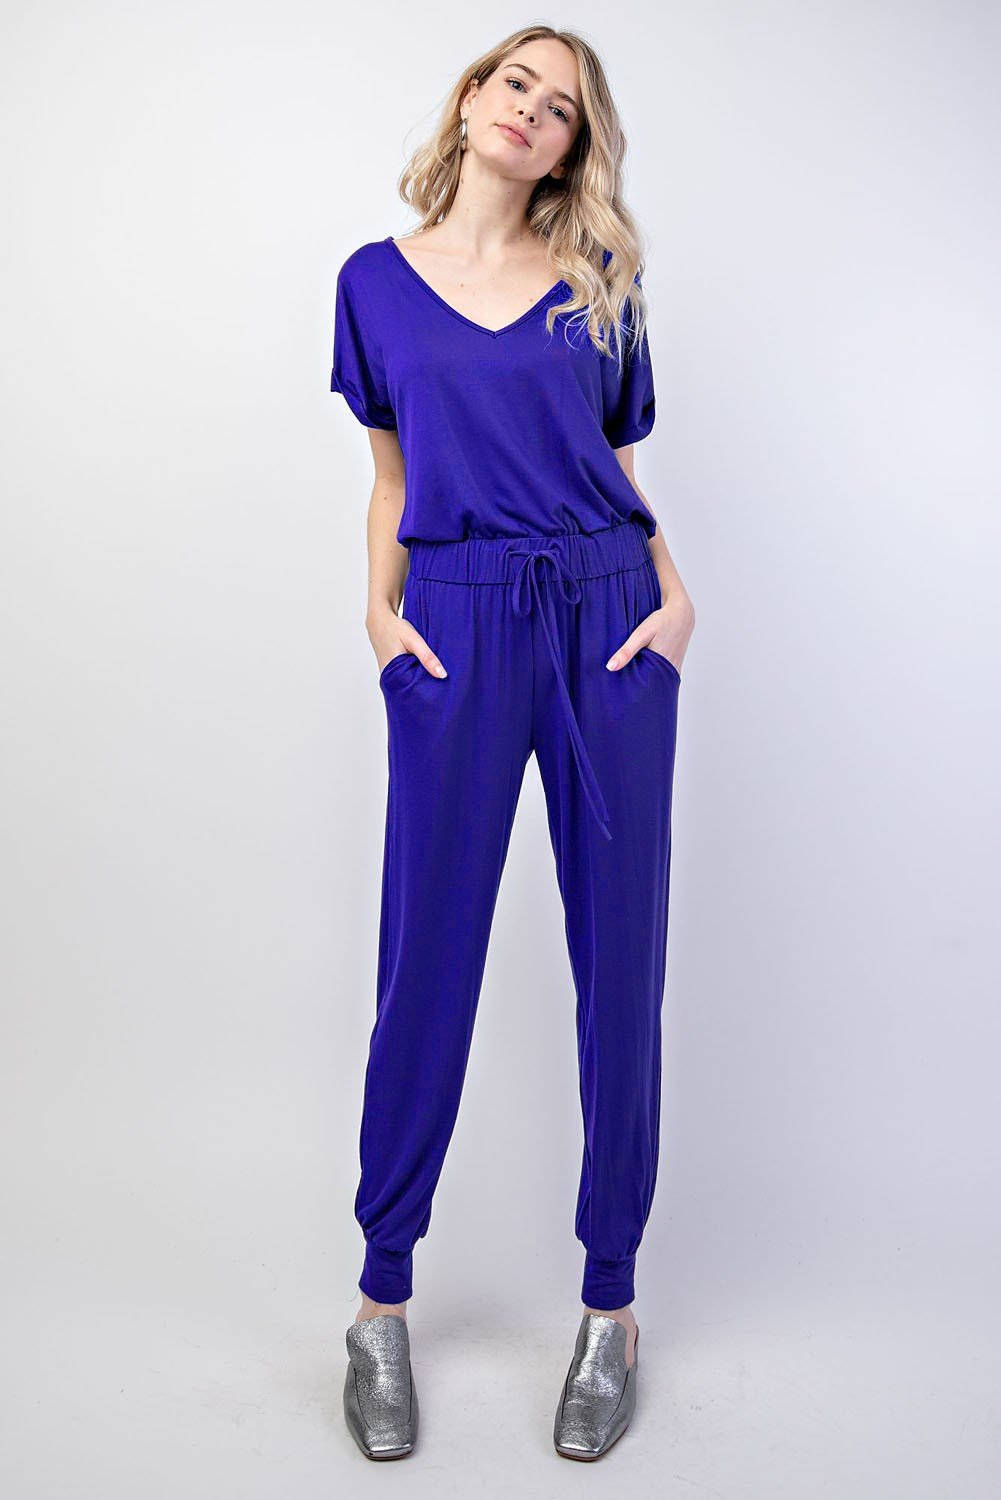 Short Sleeve Knit Jogger Jumpsuit - Available in Royal Blue & Black